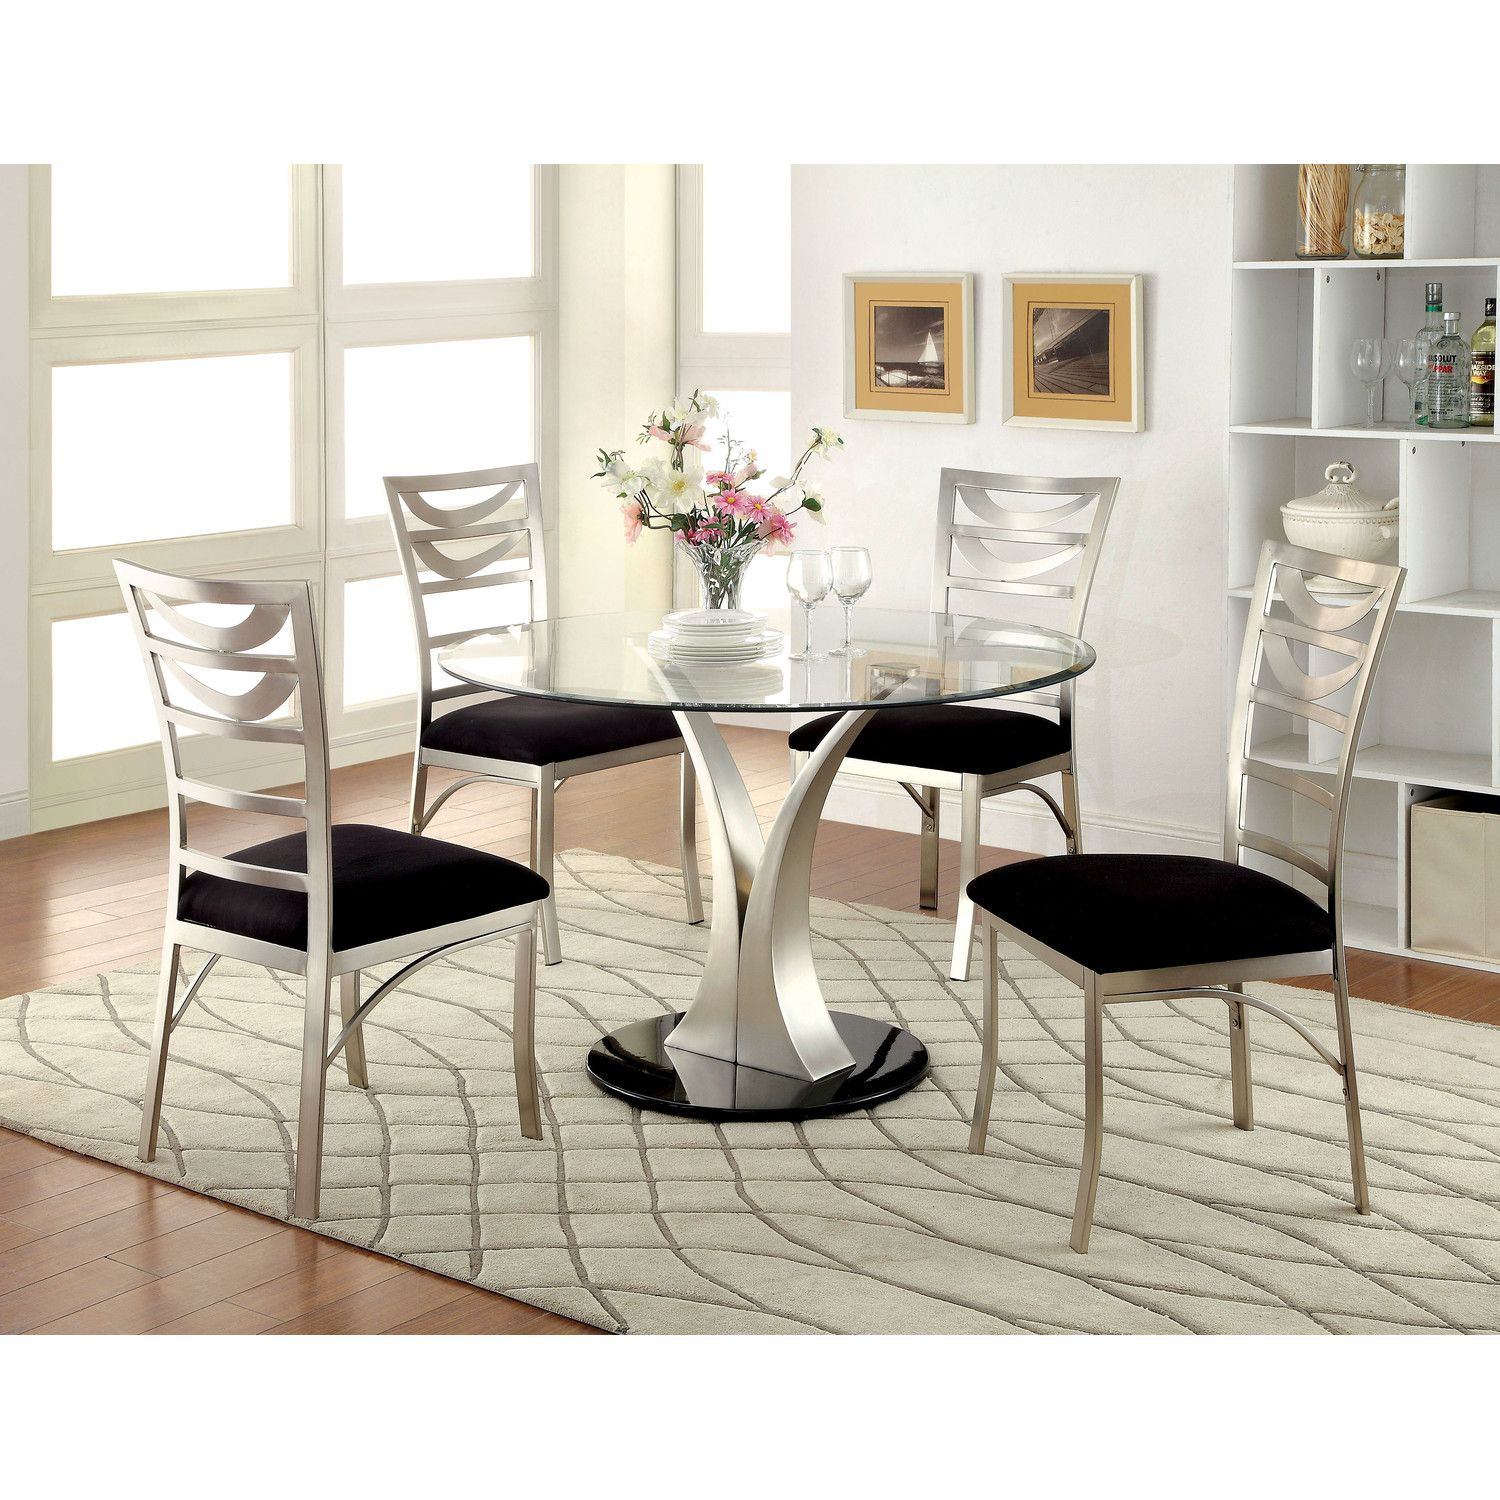 Awesome Hokku Designs Dining Table Set Ideas - Best Image Engine ...